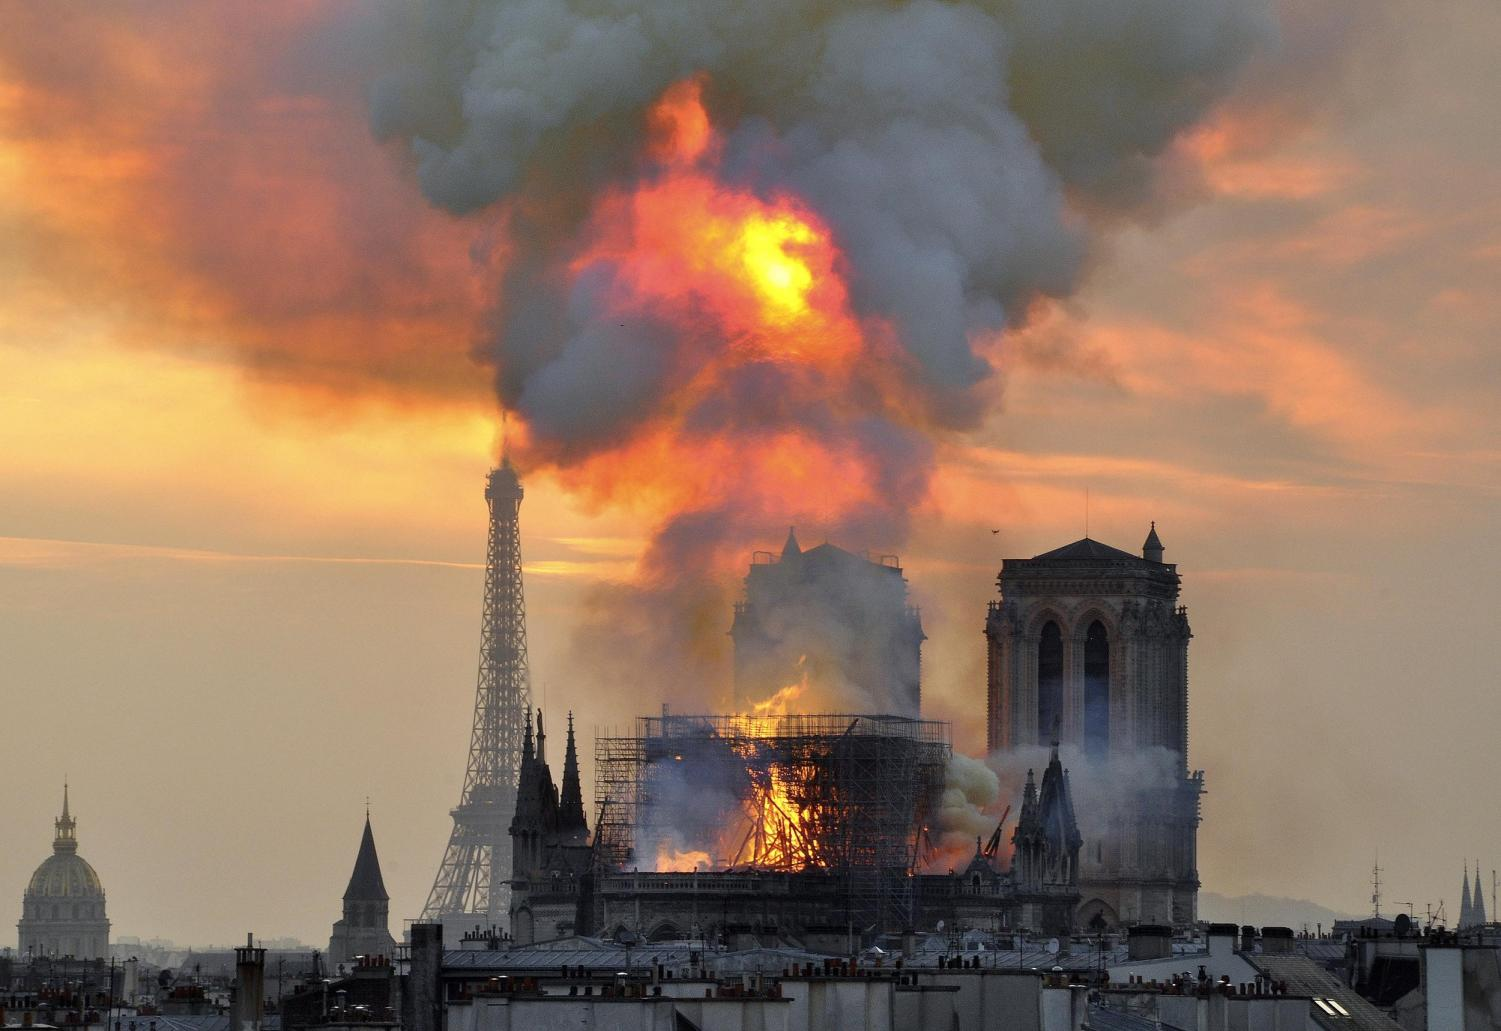 The world  looked on in horror as the iconic spire collapsed in the flames.